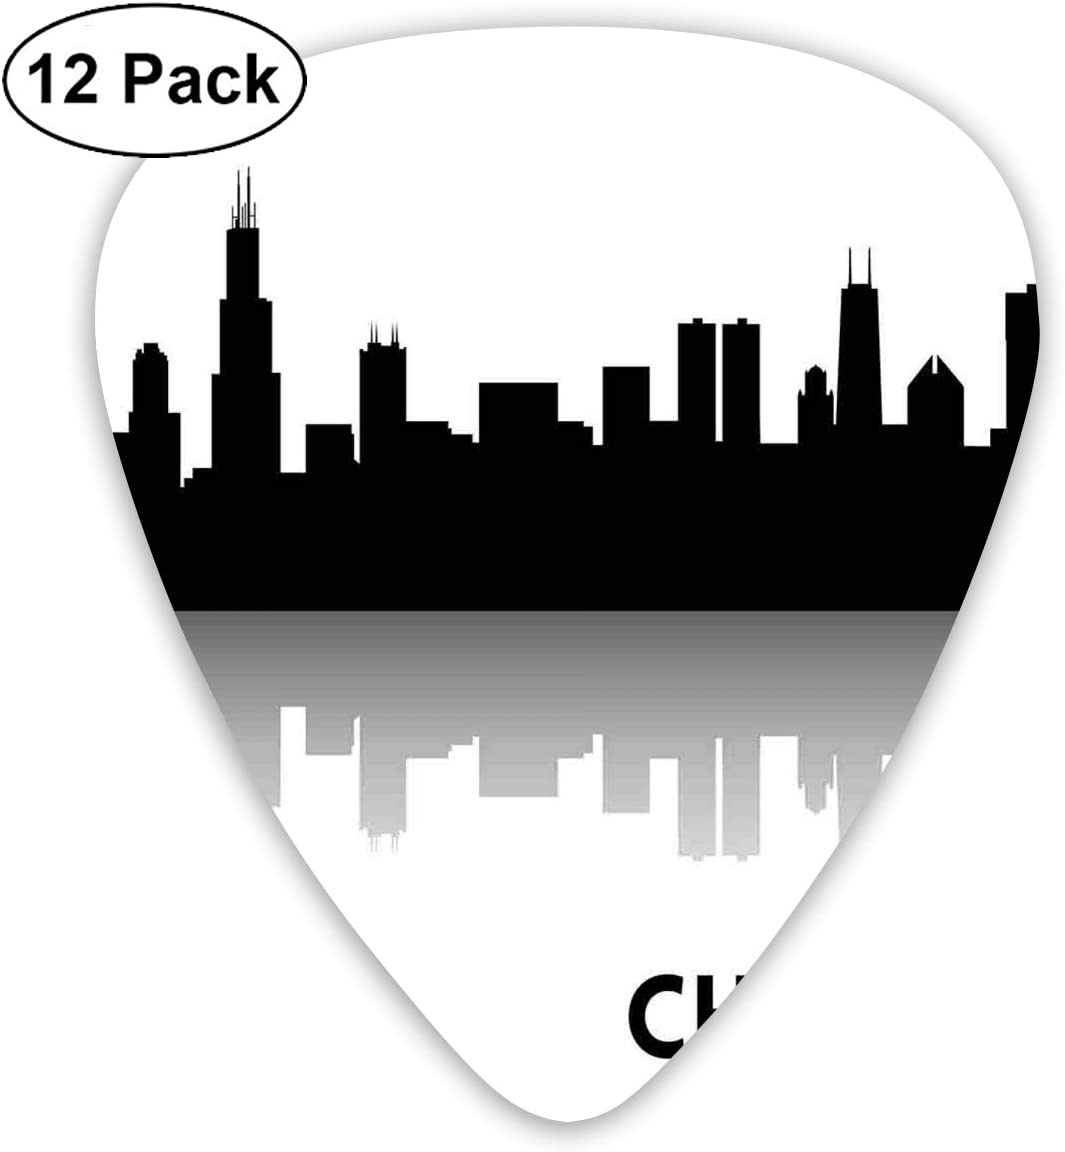 Guitar Picks12pcs Plectrum (0.46mm-0.96mm), Downtown Skyscrapers Illinois Tourism Travel Country Urban Minimalist,For Your Guitar or Ukulele